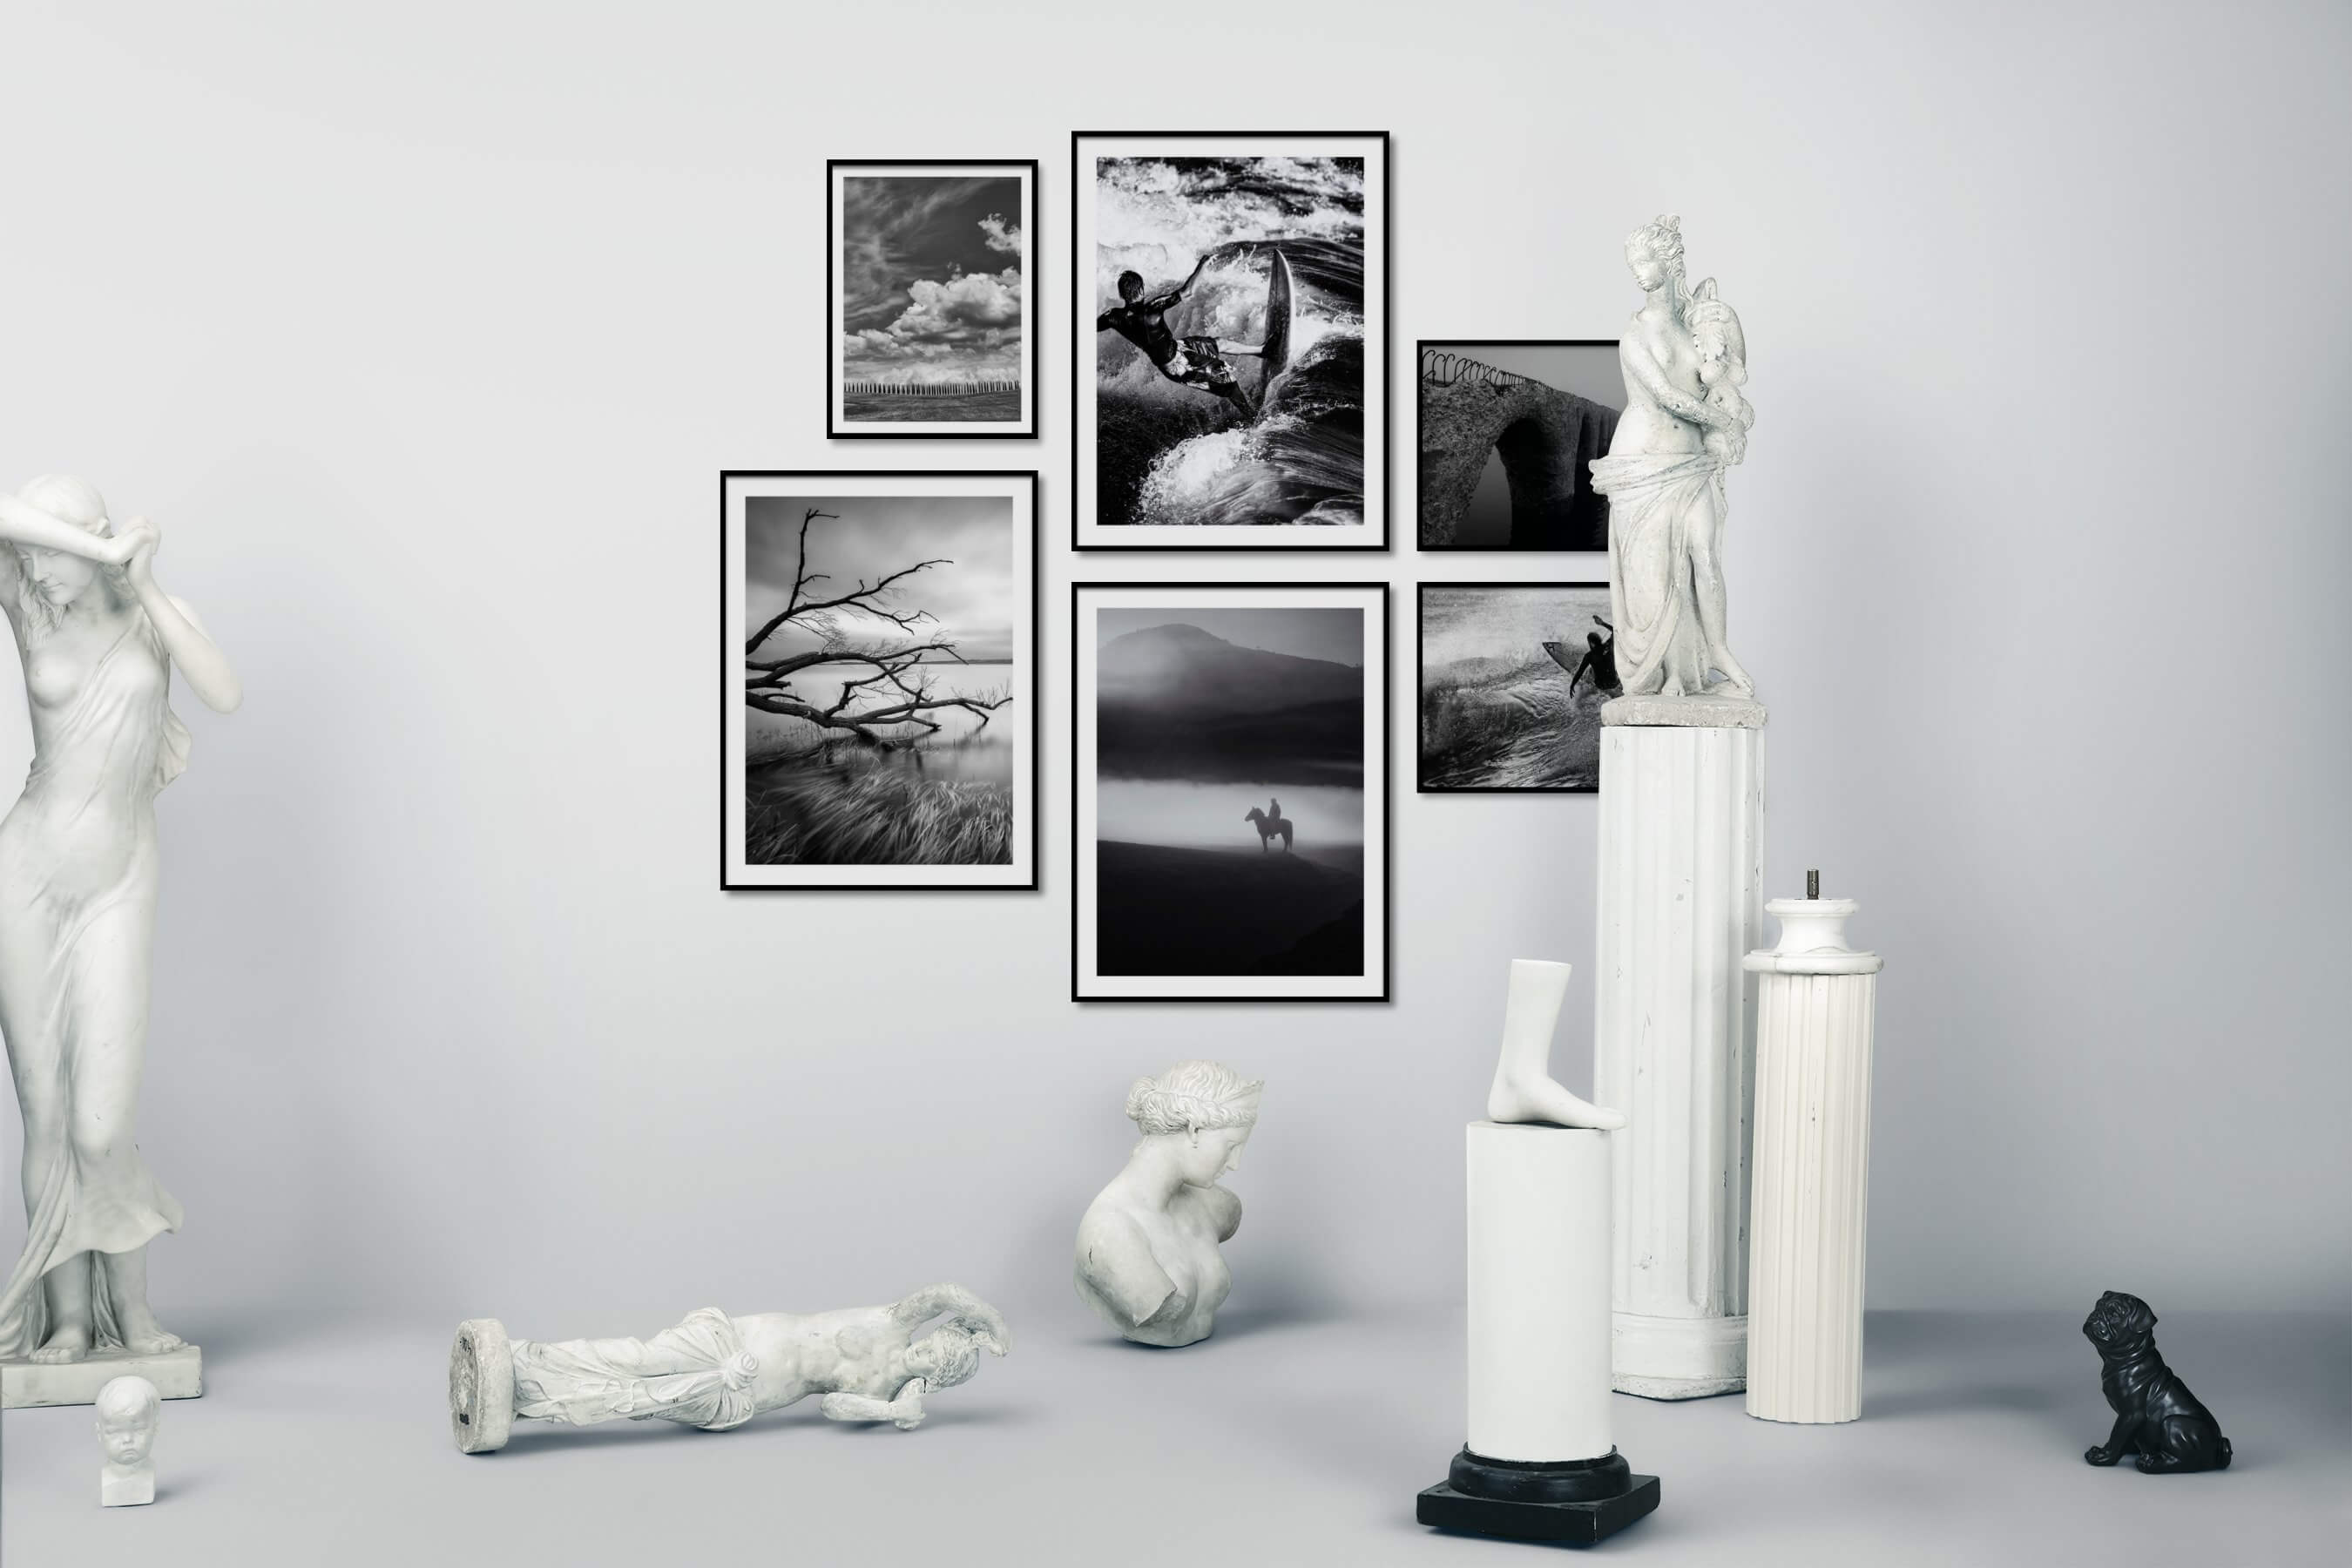 Gallery wall idea with six framed pictures arranged on a wall depicting Black & White, For the Moderate, Country Life, Beach & Water, Mindfulness, and Animals